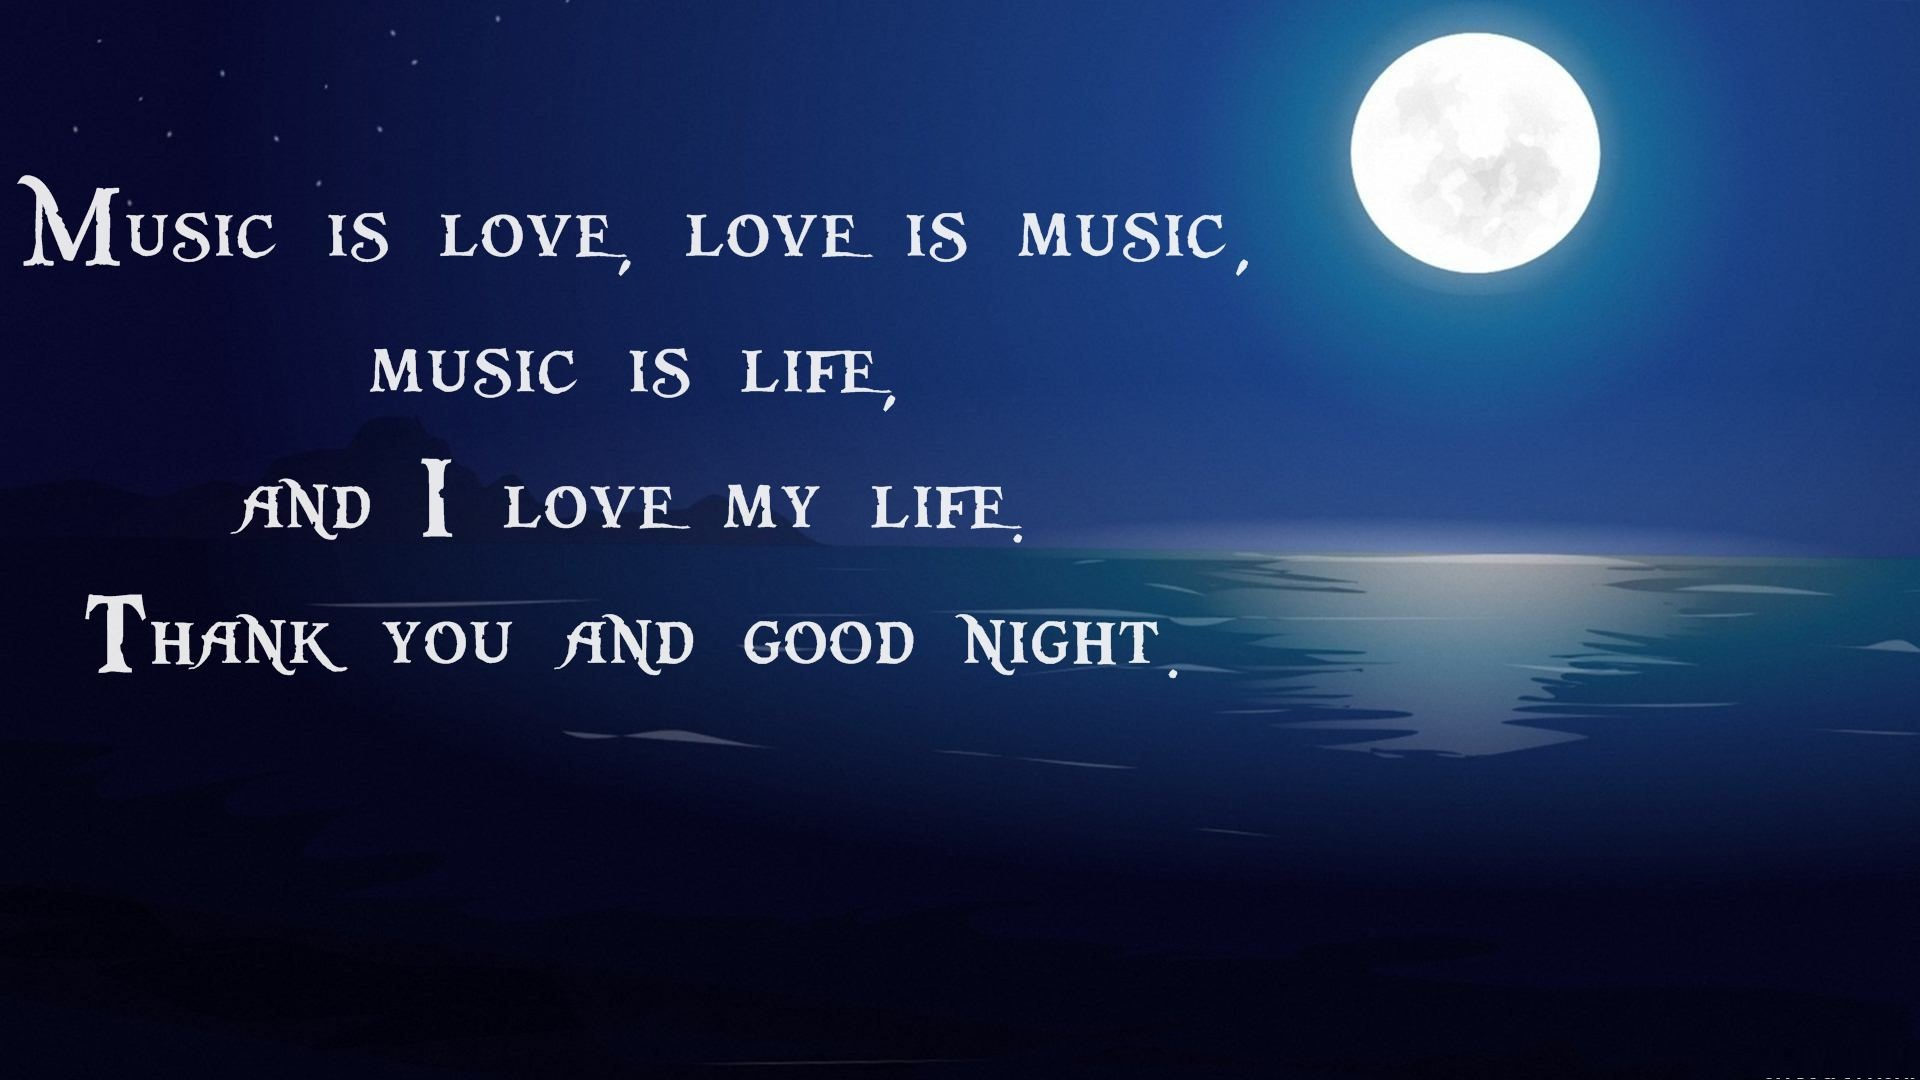 Love Wallpaper For Good Night : Good Night Wallpapers HD with quotes and Wishes